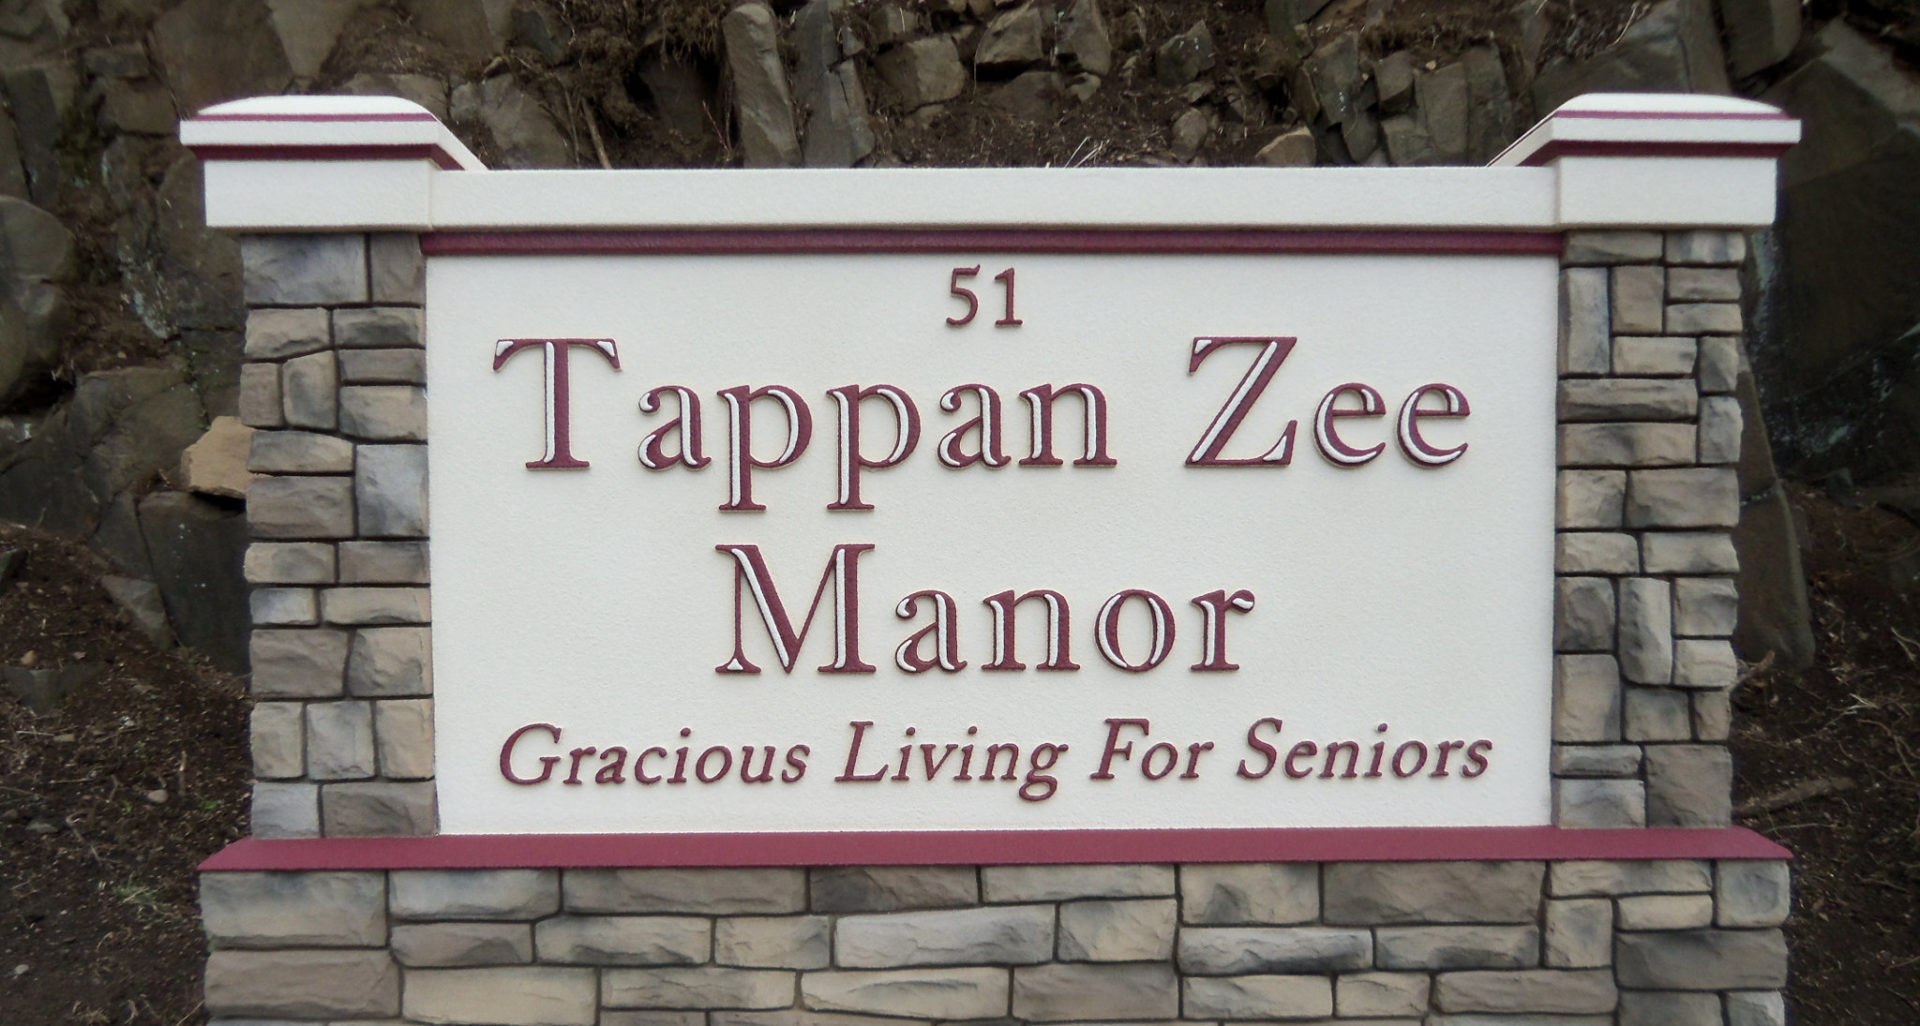 Tappan Zee Manor - Street Sign